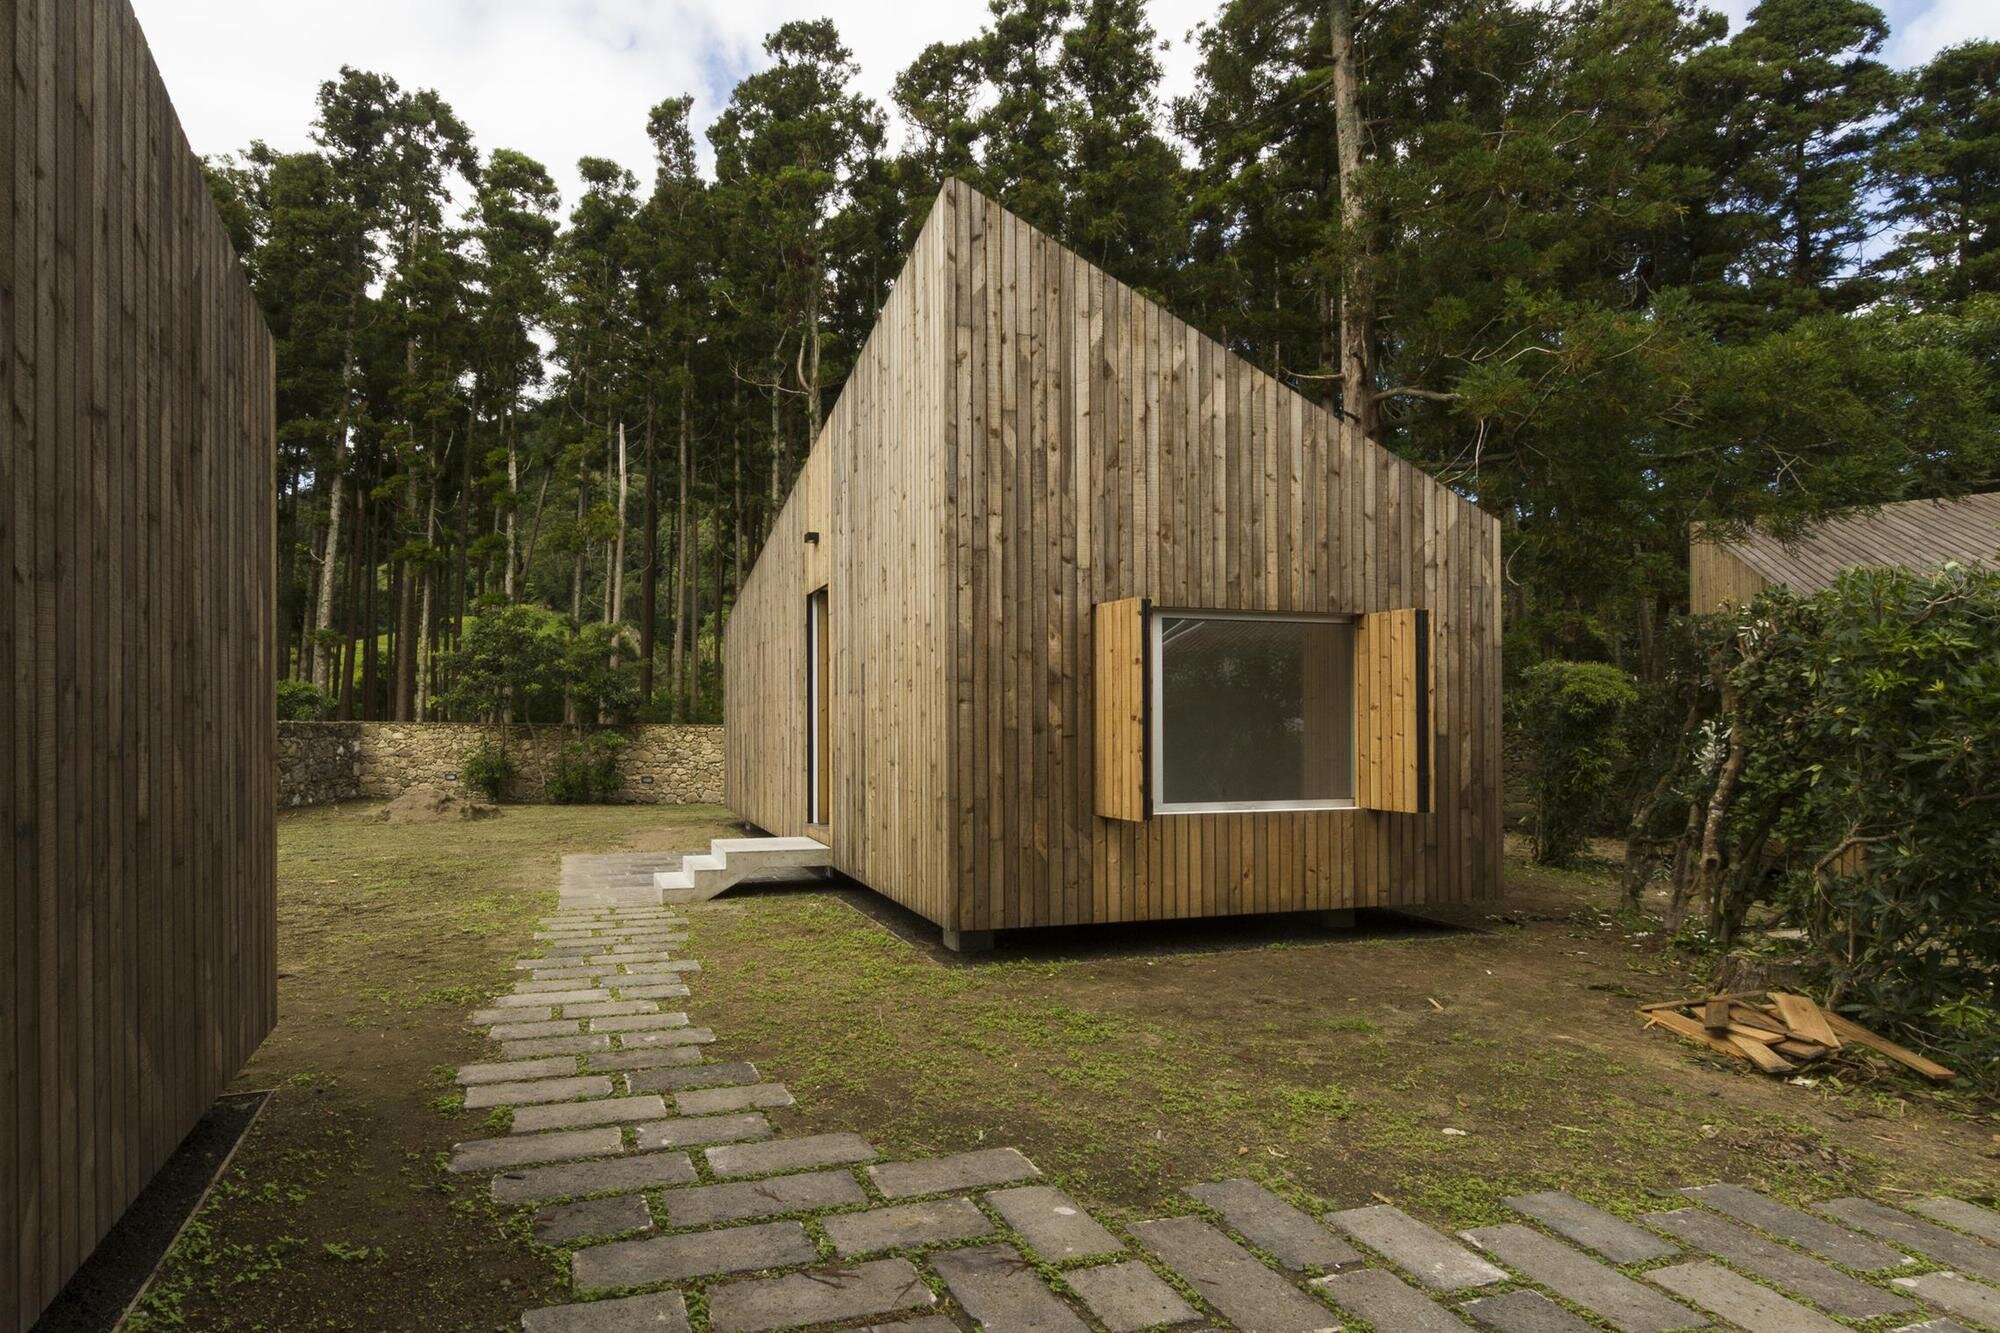 Stupendous A Series Of Small Housing Units In Cidades Portugal Largest Home Design Picture Inspirations Pitcheantrous